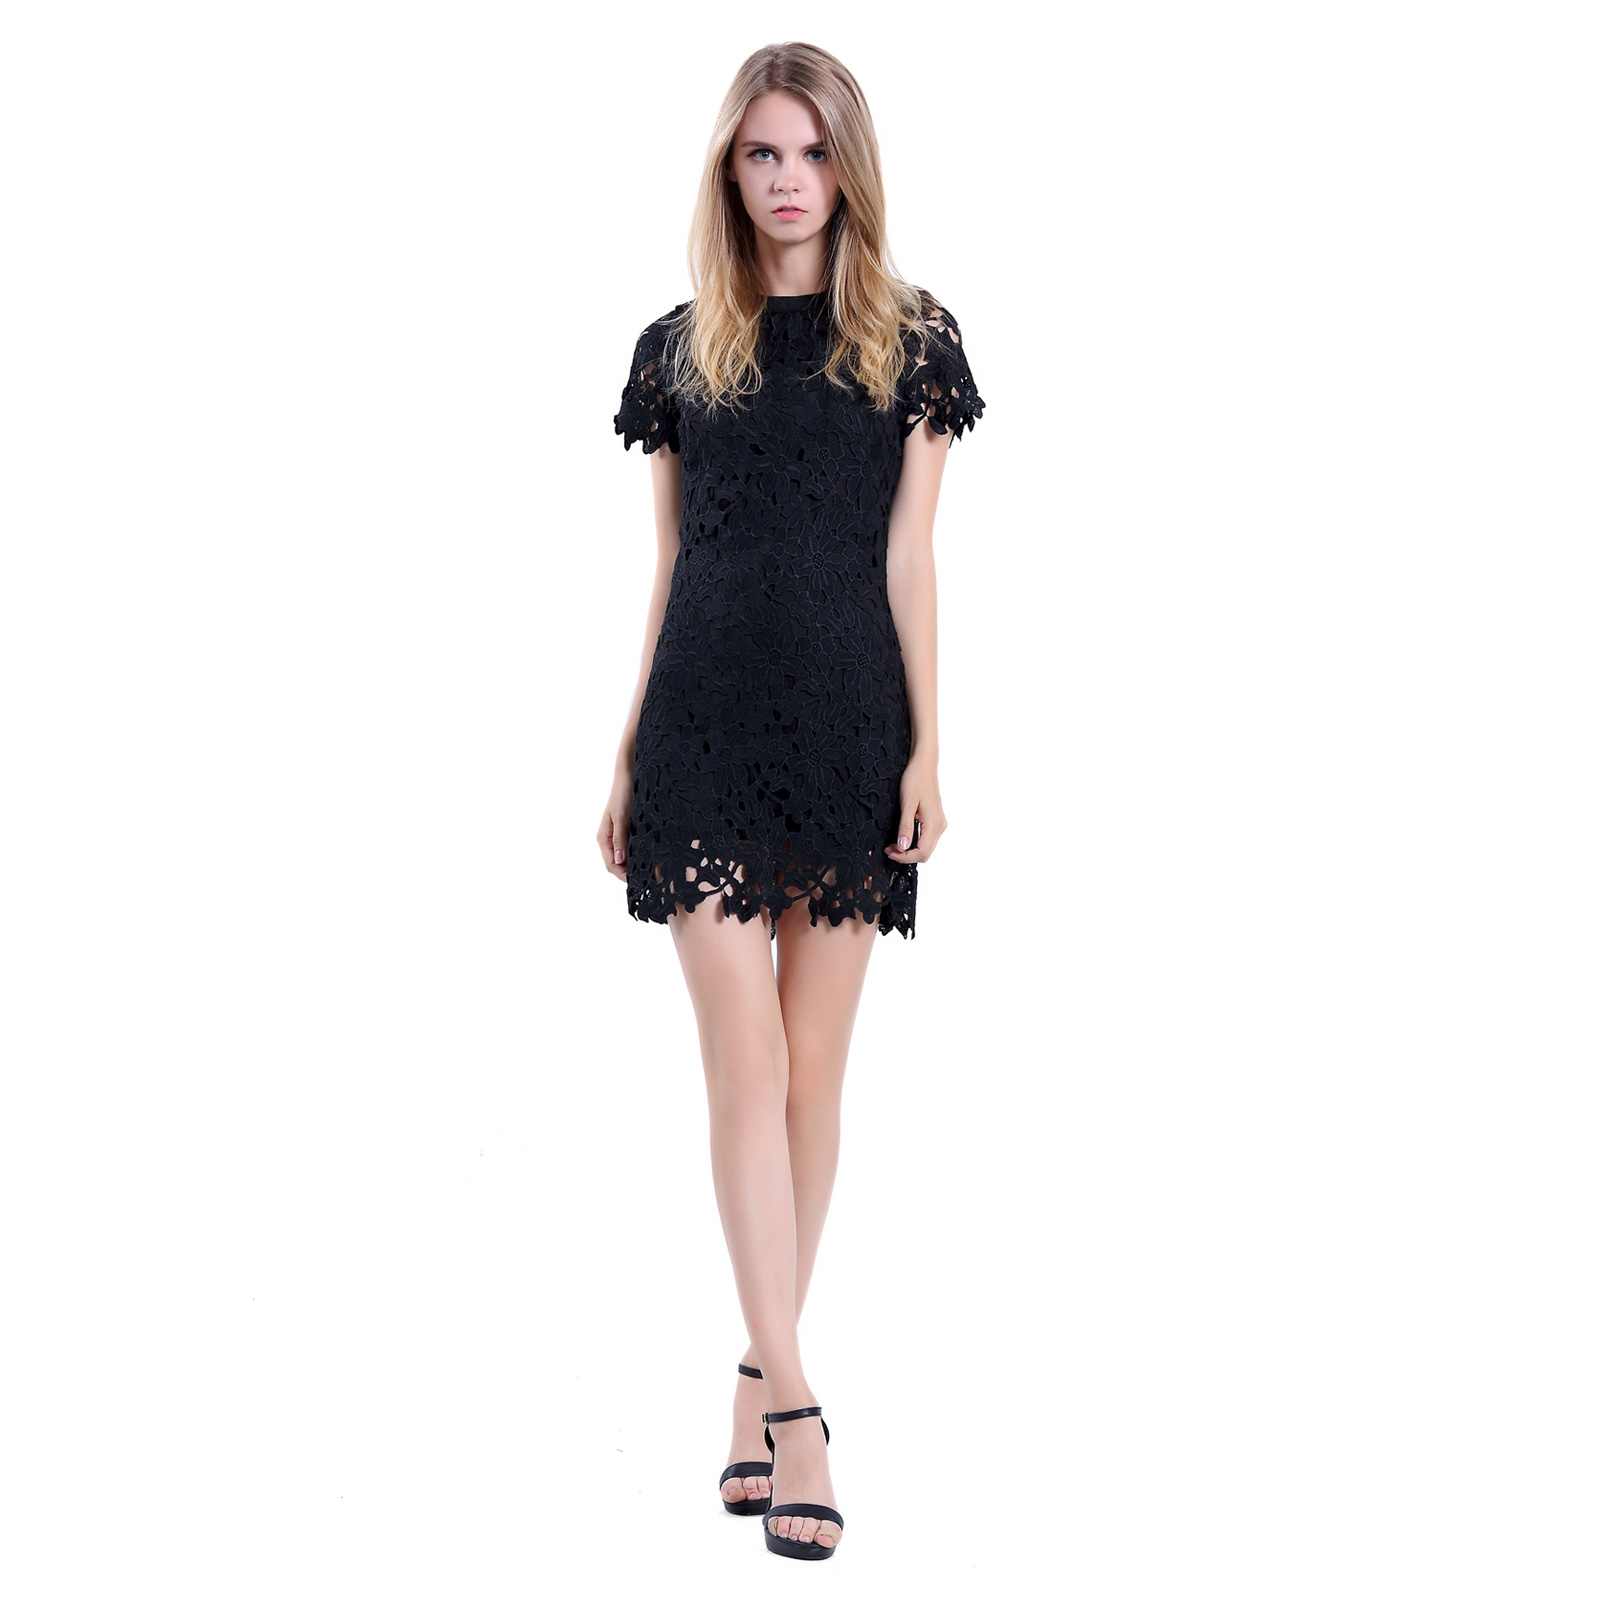 bee82578004 Women Sheath Cut Short Sleeve Black Fringe Lace Short Party Cocktail Dress